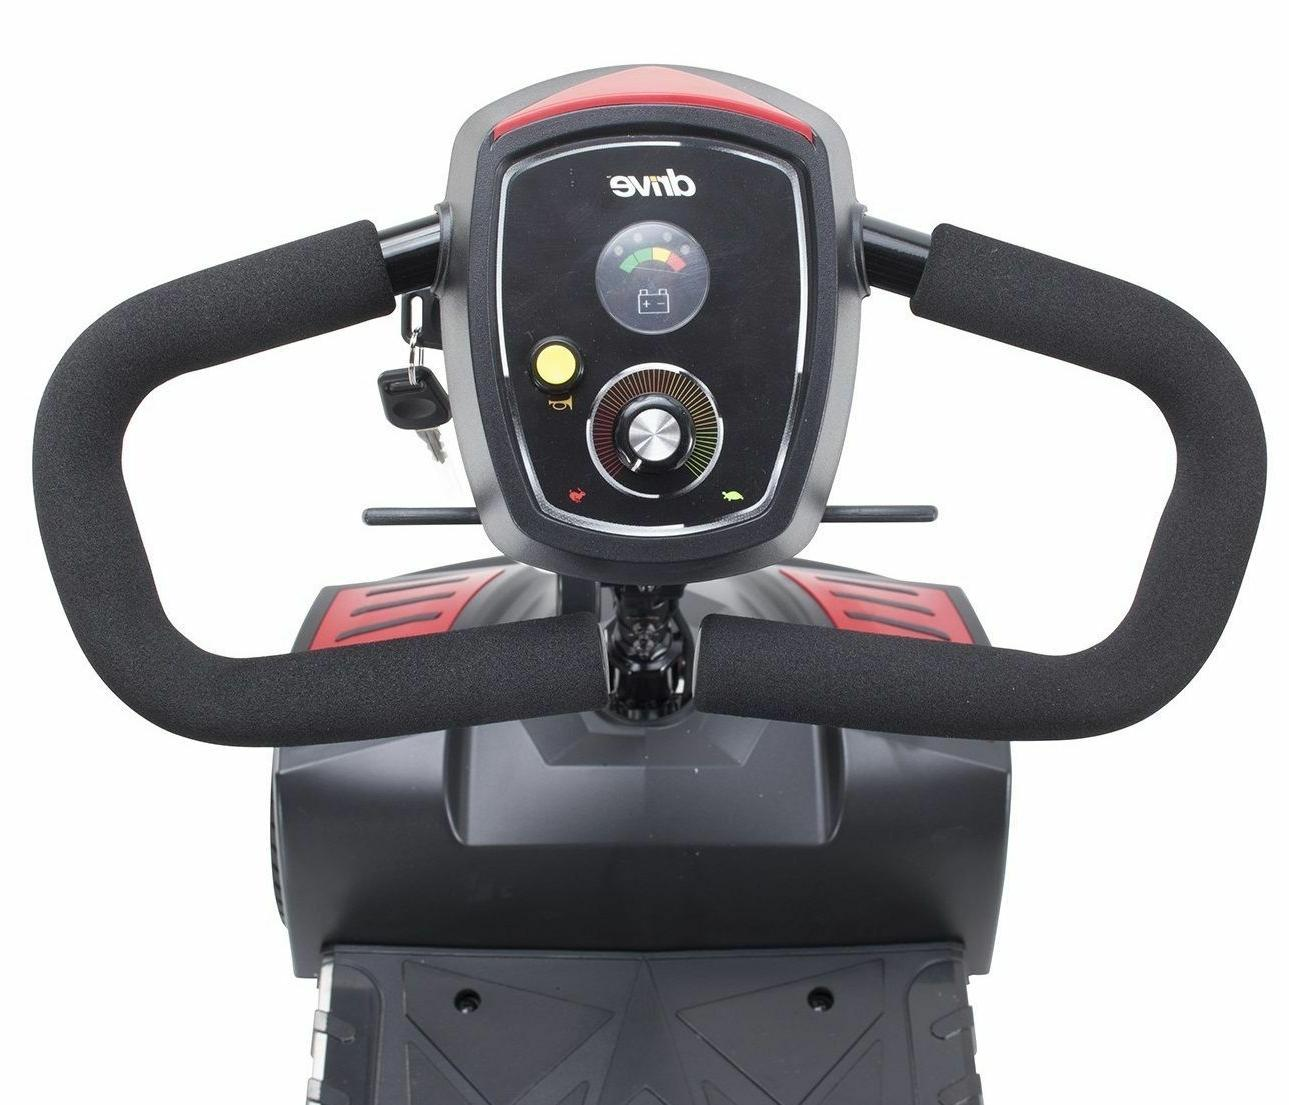 # SFSCOUT4 Spitfire Scout 4 Wheel Travel Power Scooter